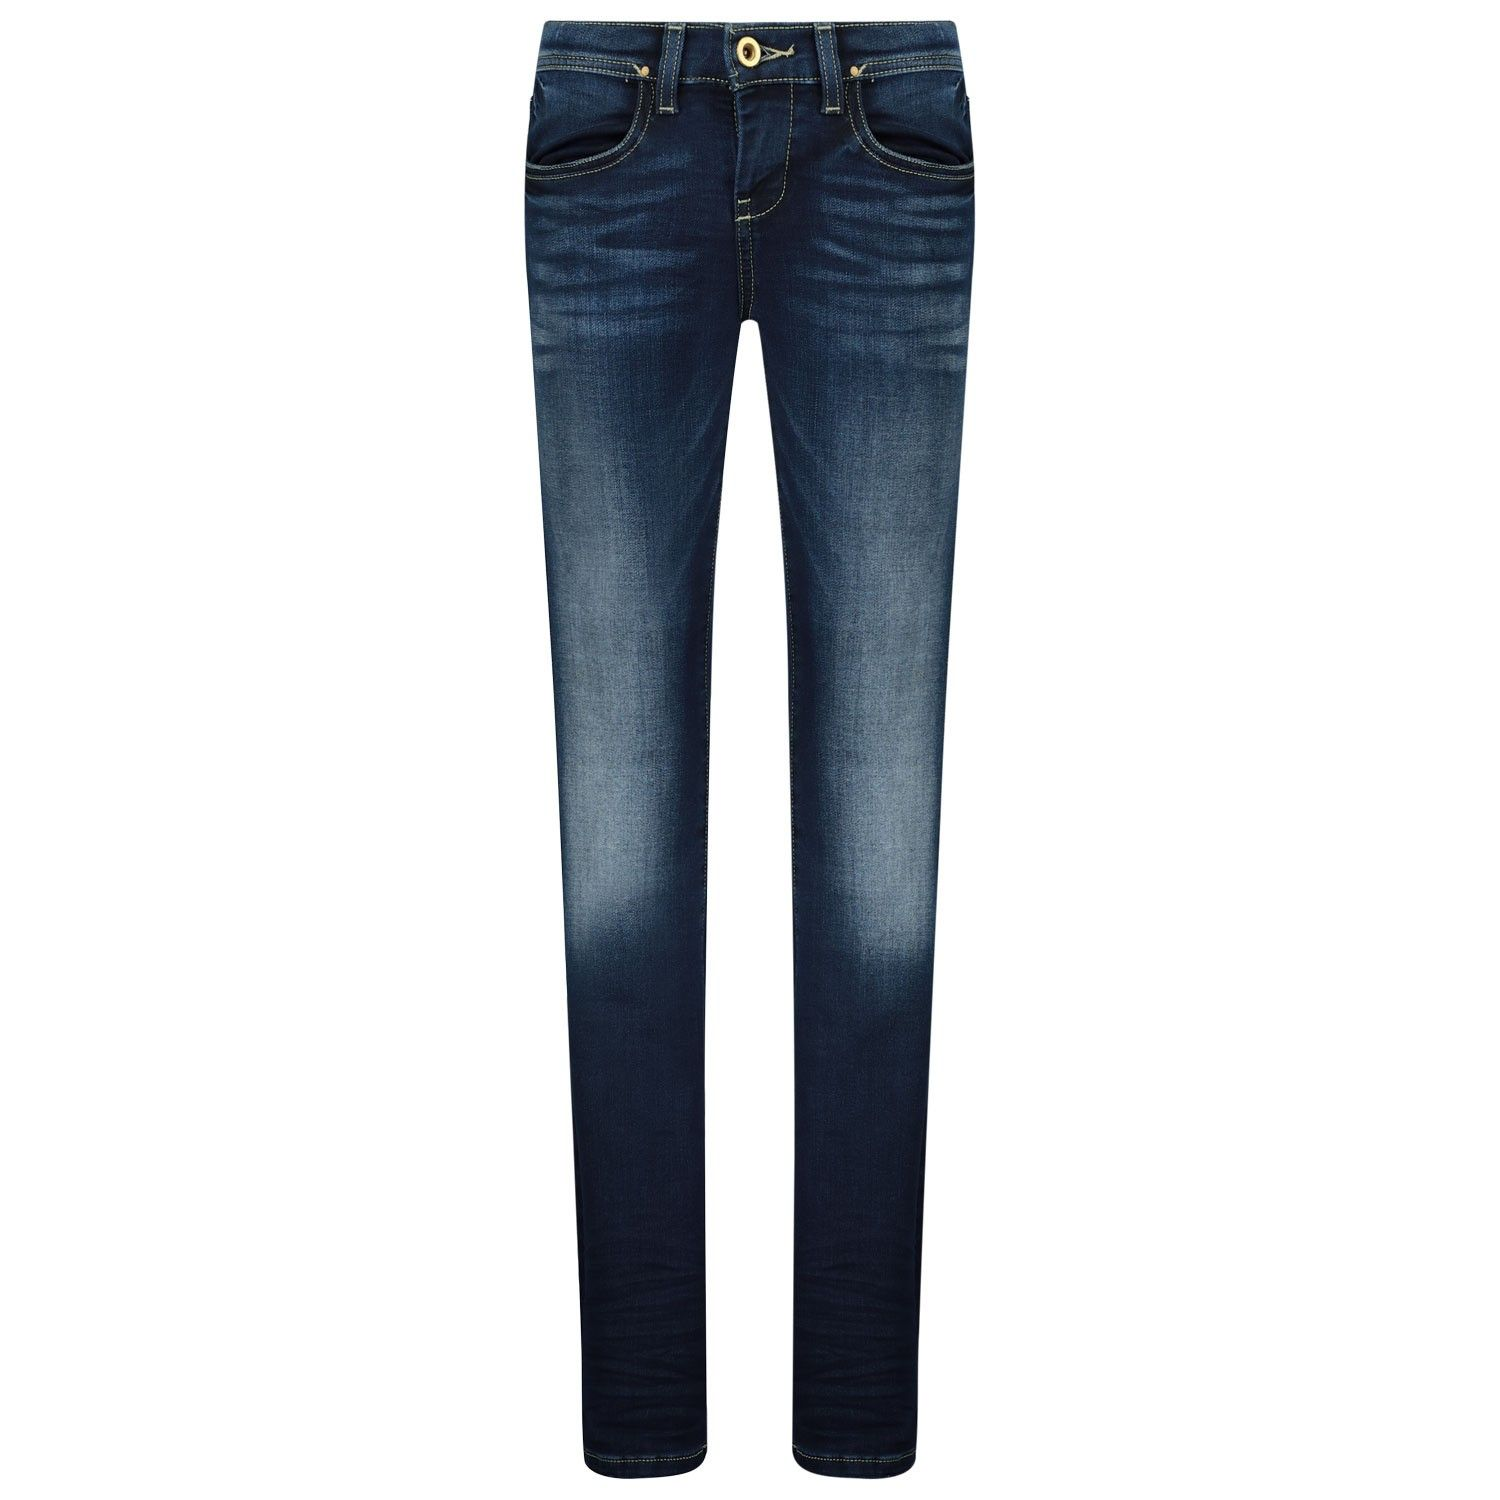 Picture of Diesel 00J3S9 kids jeans jeans